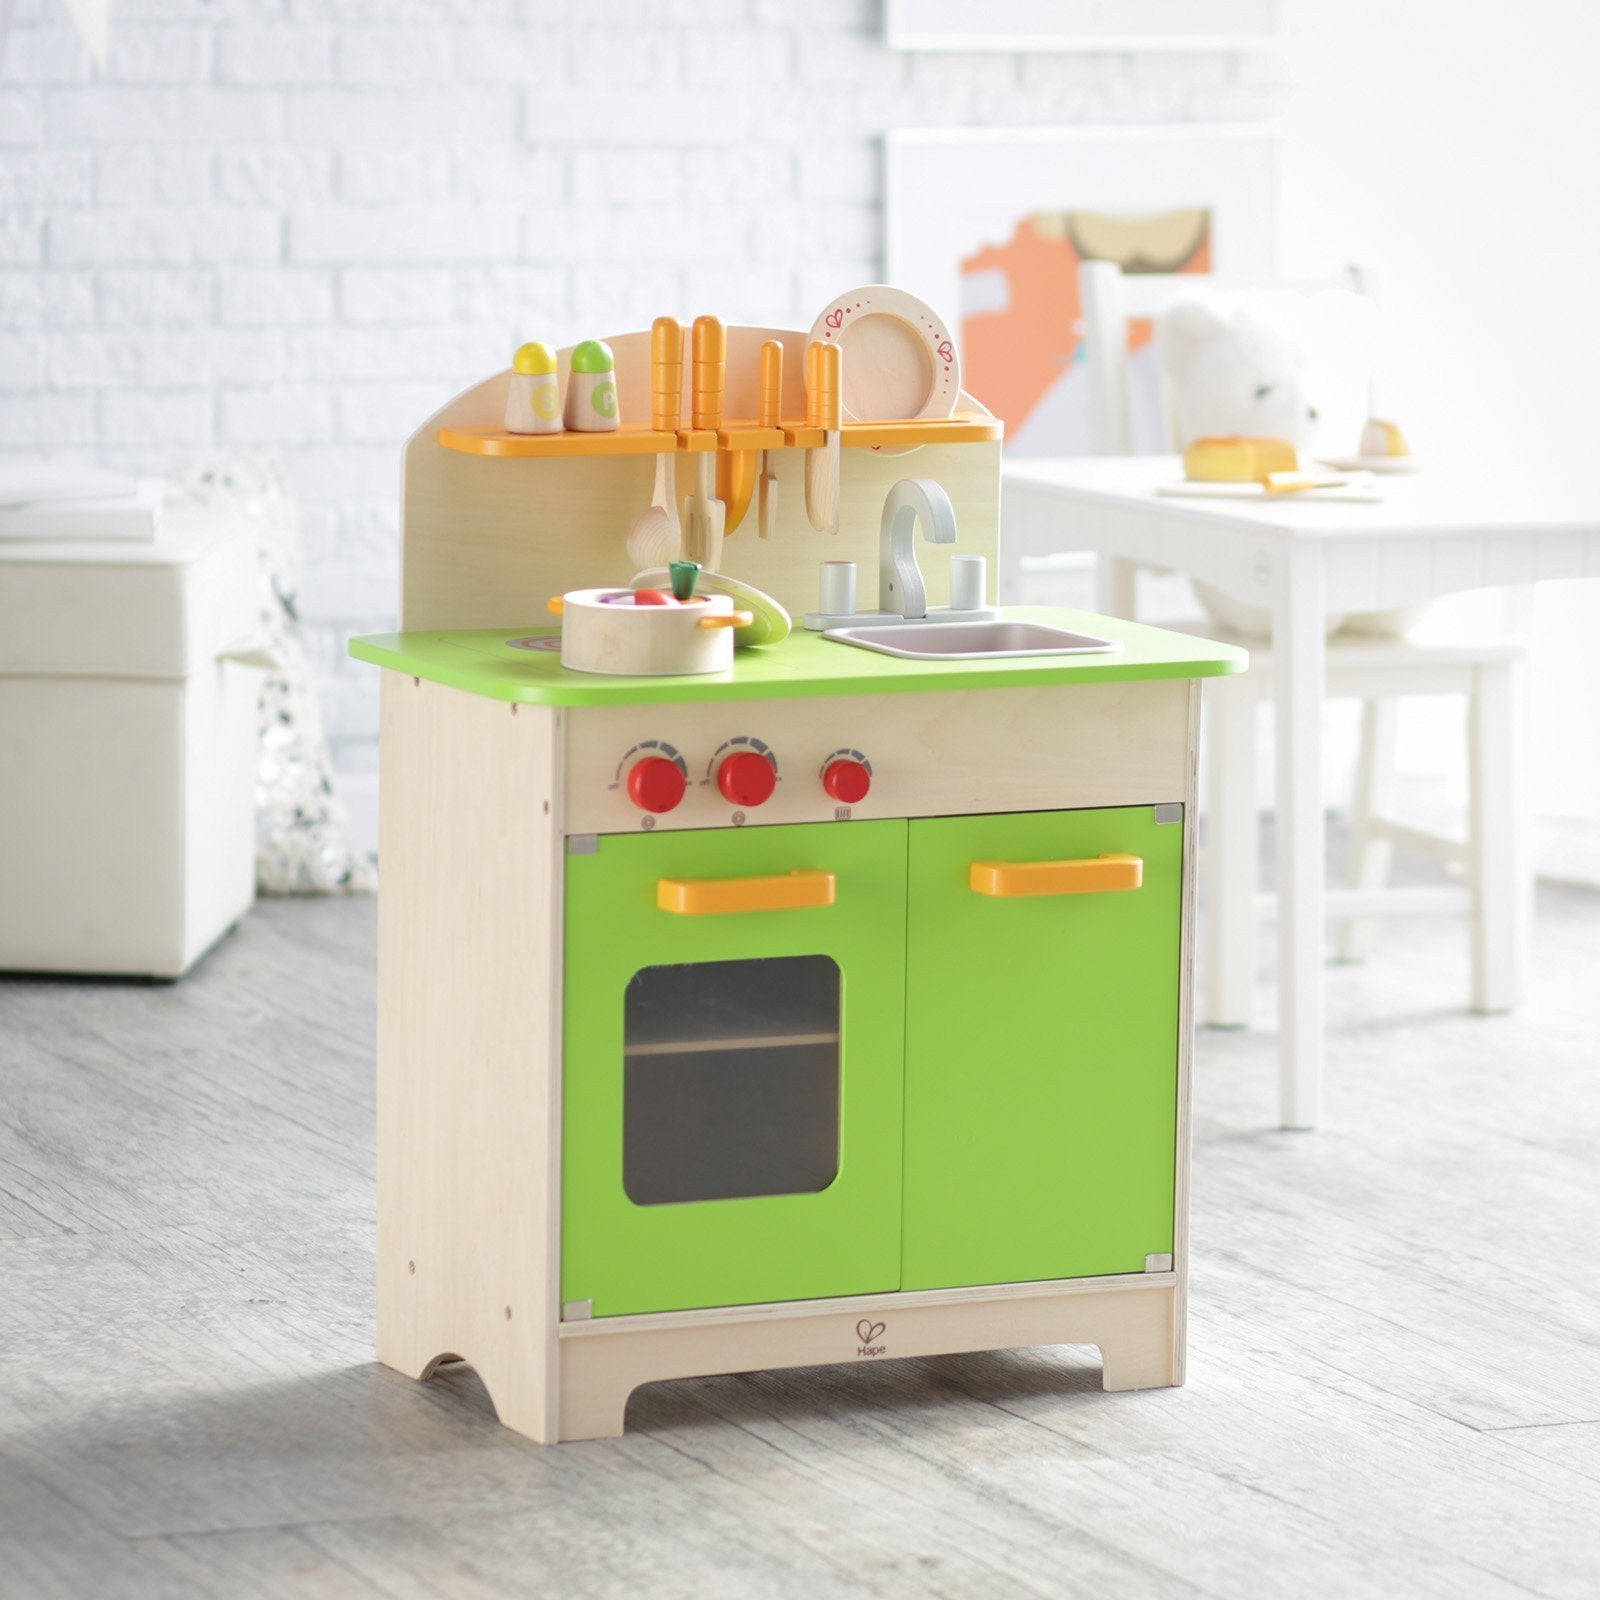 Details about  /Hape Gourmet Play Kitchen Starter Accessories Wooden Play Set